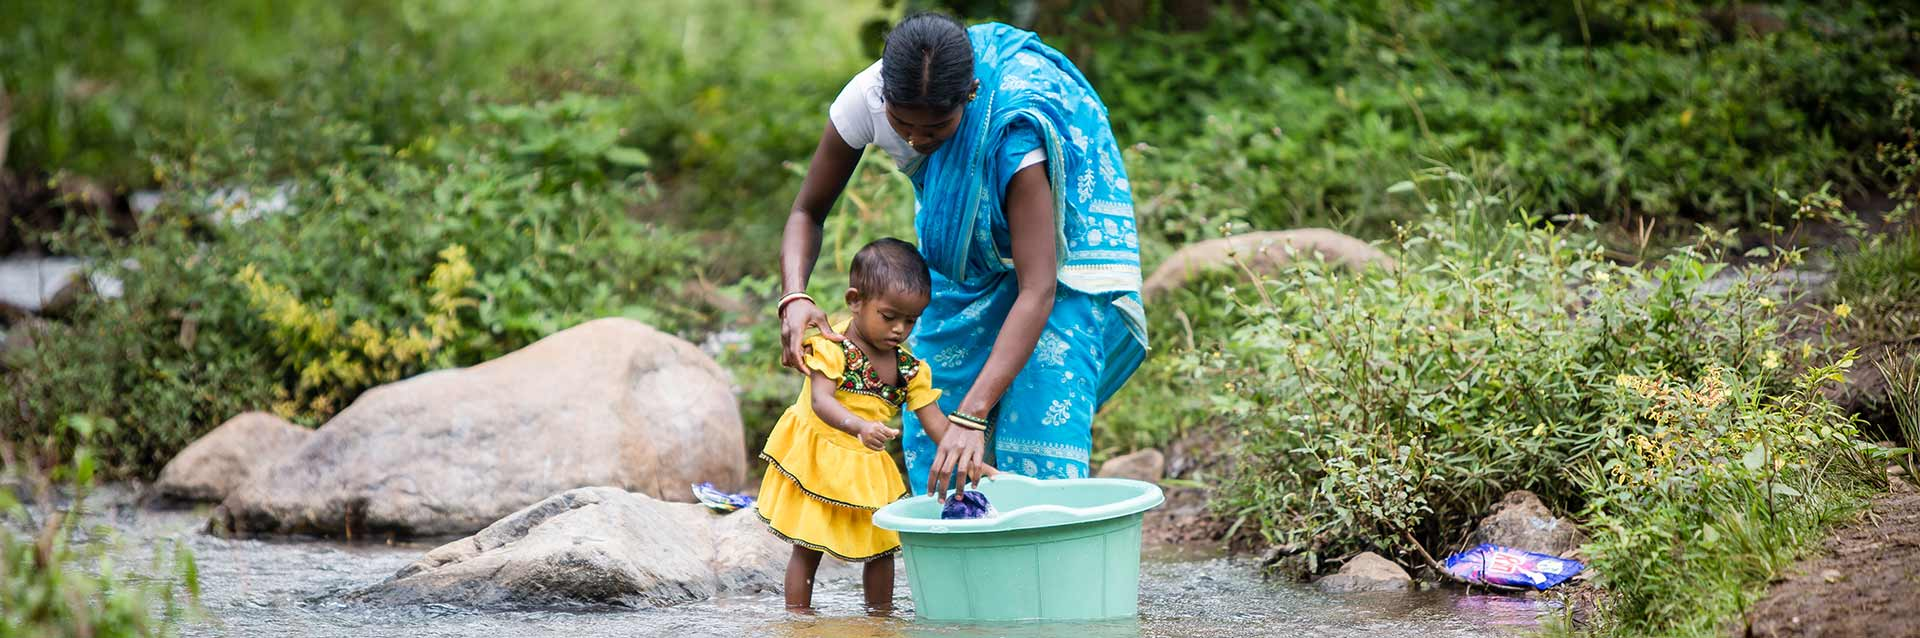 Indian Child with Mother at Stream